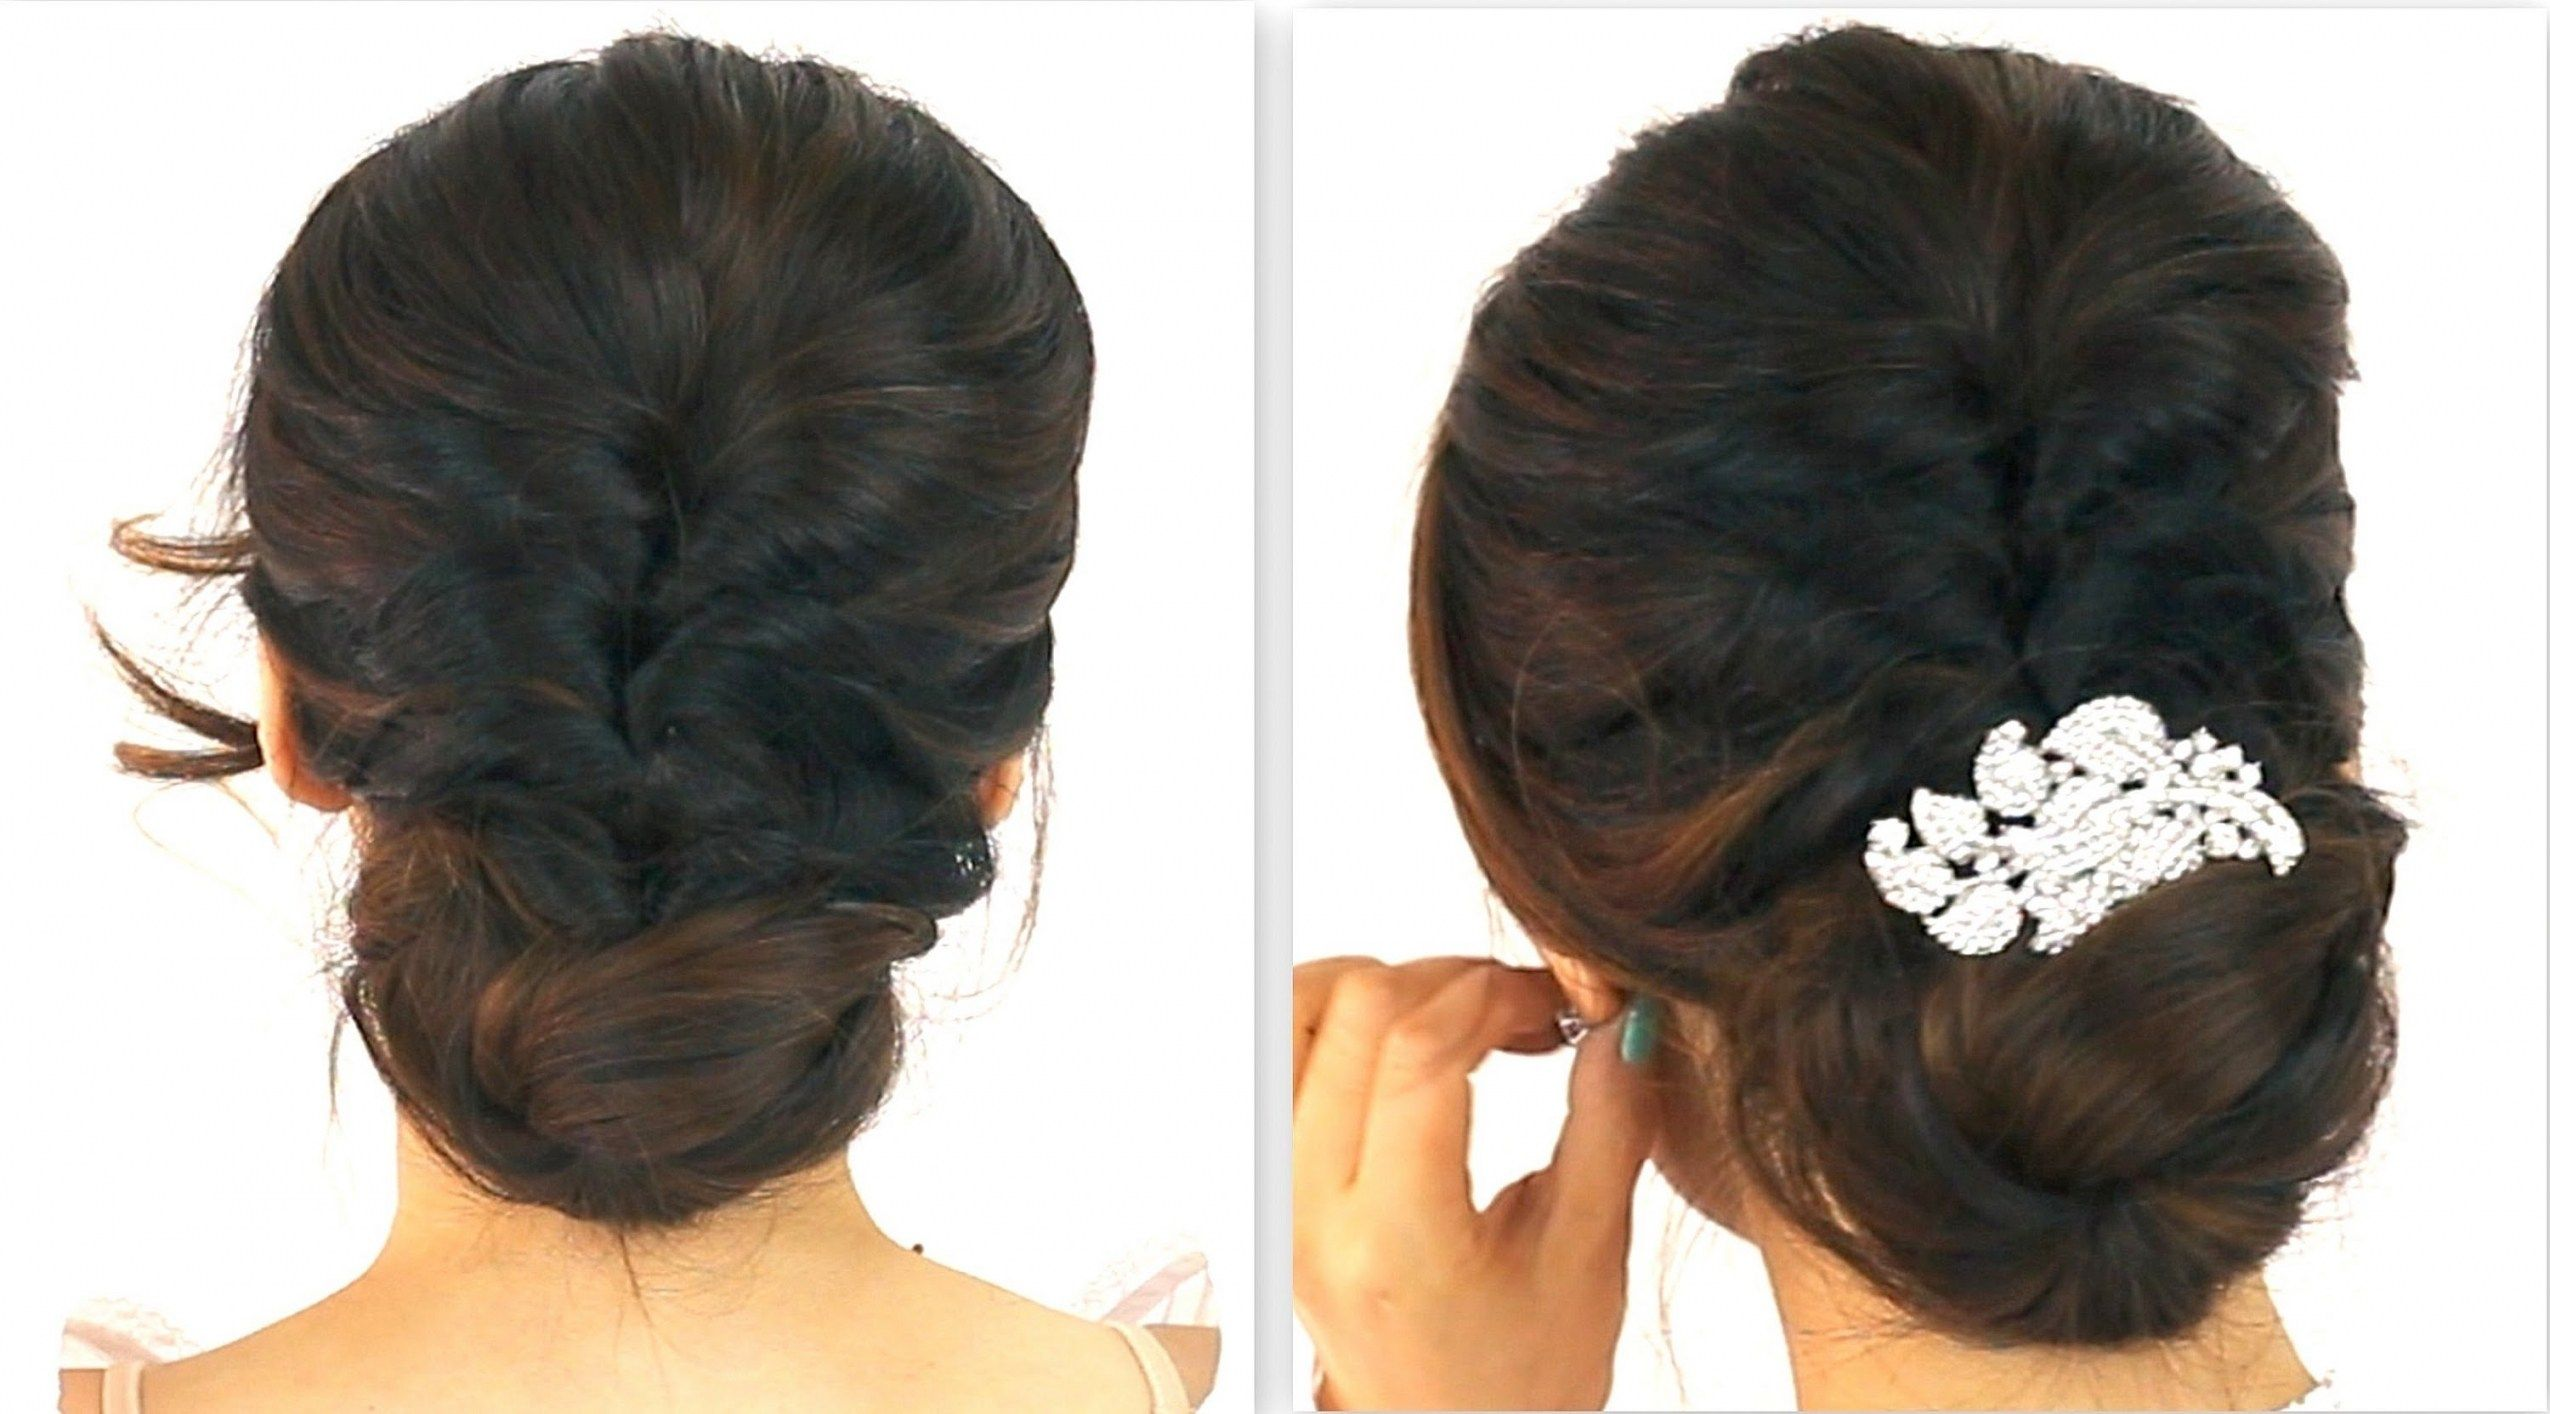 Indian Wedding Party Hairstyles For Short Hair Long Hair Styles Hair Styles Long Hair Ponytail